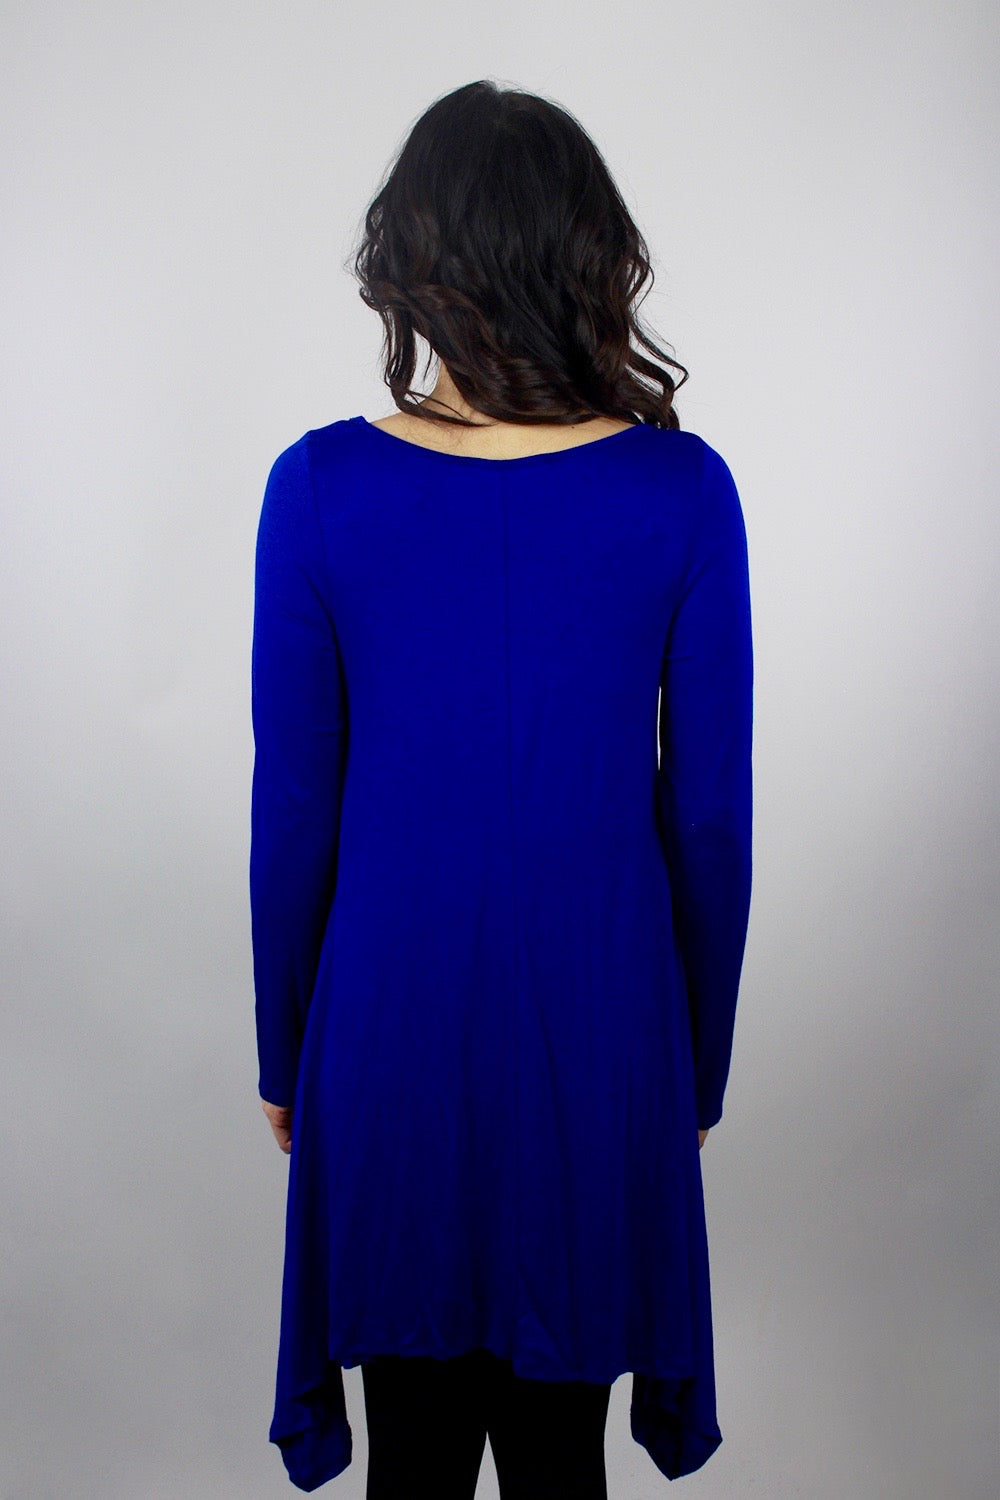 Long Dark Blue Top